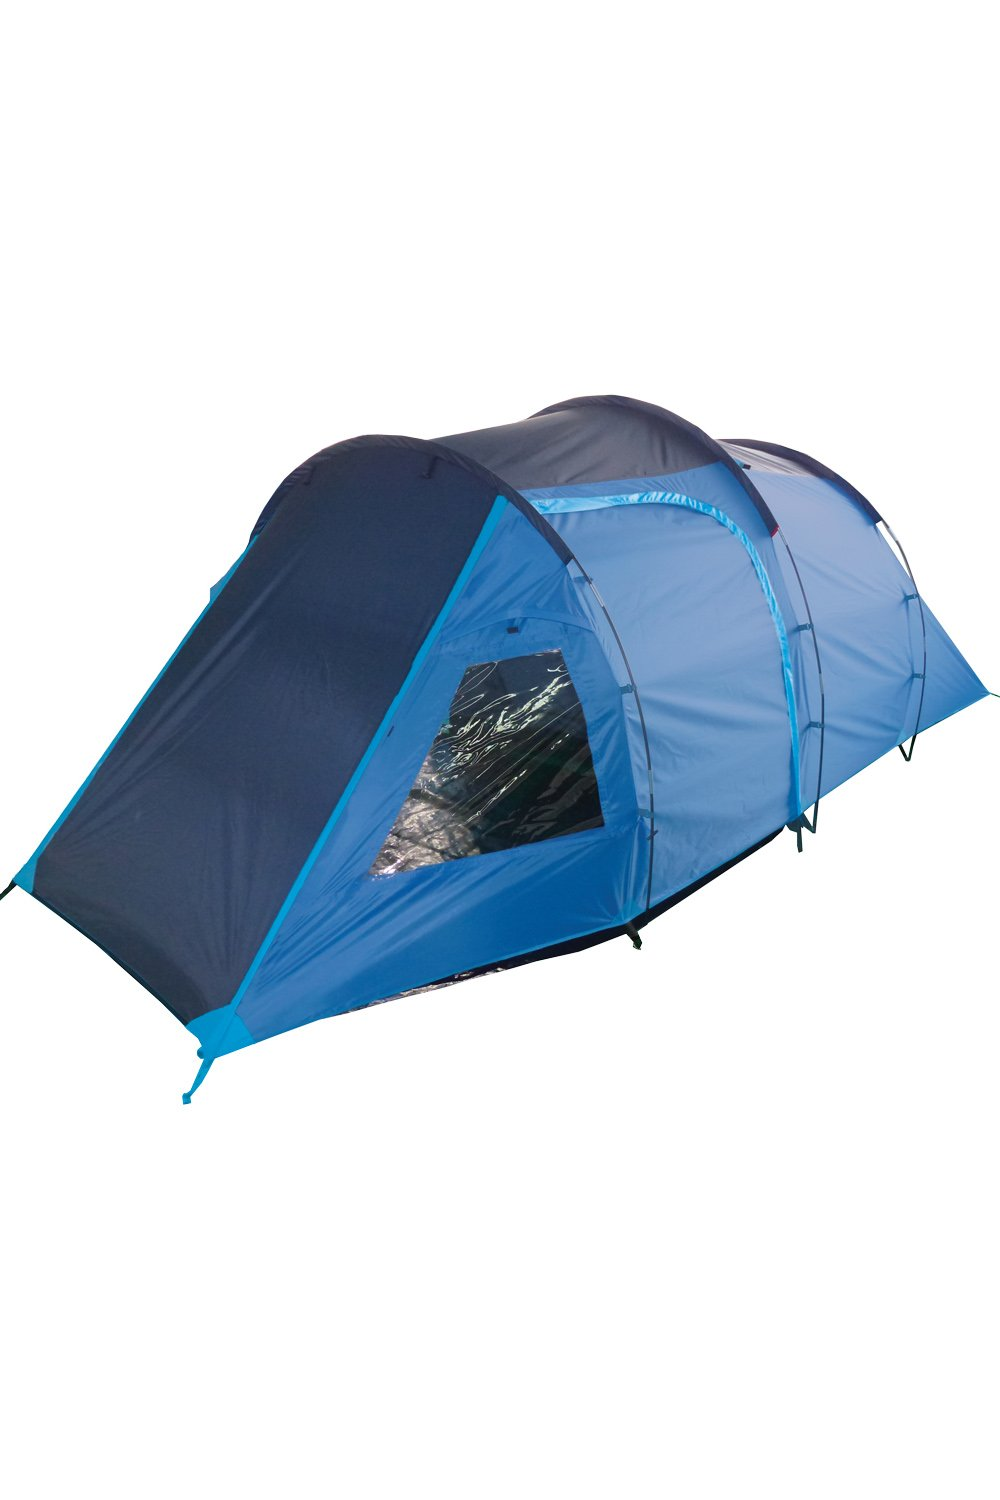 Mountain Warehouse Mini Break 4 Man Tent - Waterproof C&ing Tent Sewn in Groundsheet Family Tent Breathable Door Sleeping Tent Roof Vent with ...  sc 1 st  Amazon UK & Mountain Warehouse Mini Break 4 Man Tent - Waterproof Camping Tent ...